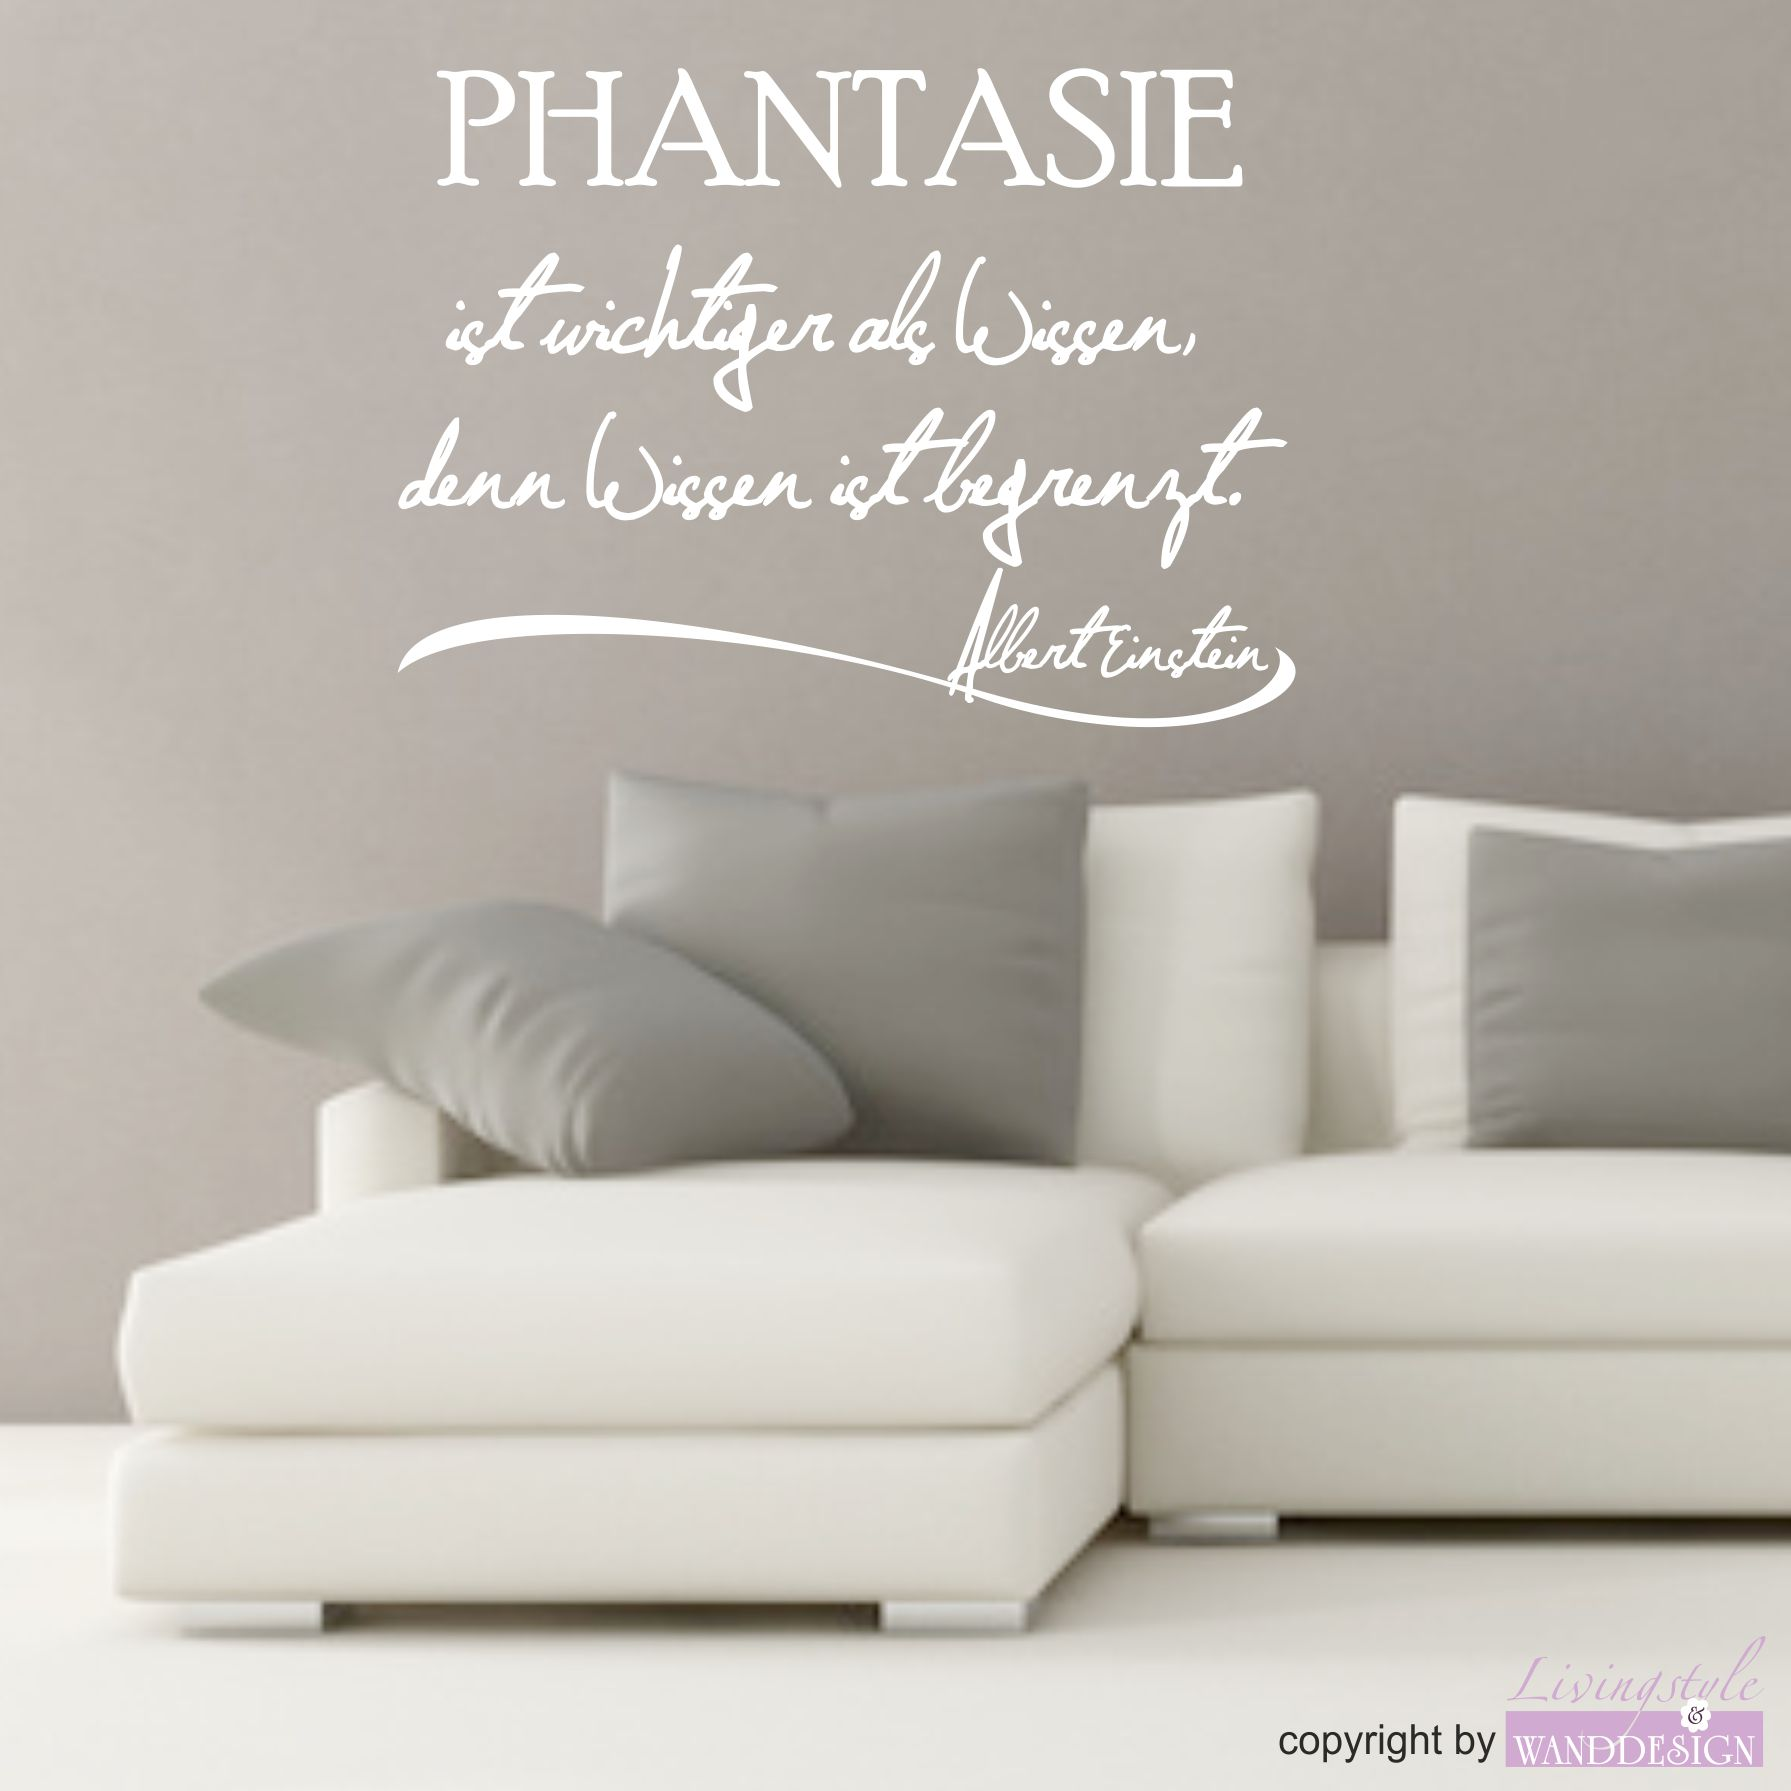 wandtattoo spruch albert einstein phantasie spr che zitate wandtattoos livingstyle. Black Bedroom Furniture Sets. Home Design Ideas